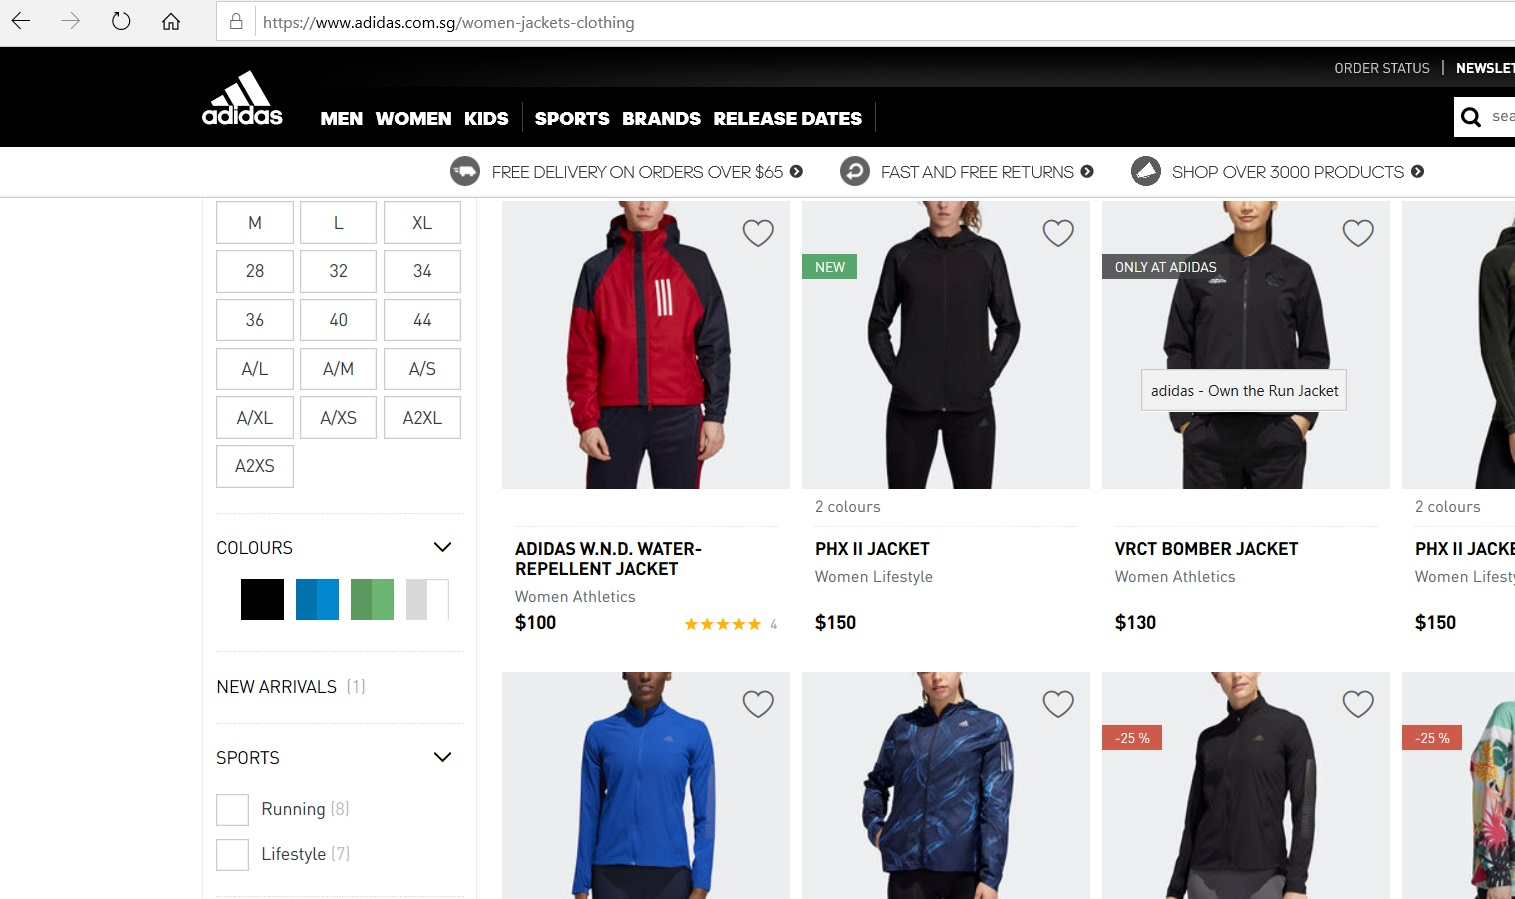 Online catalogue of Adidas jackets.